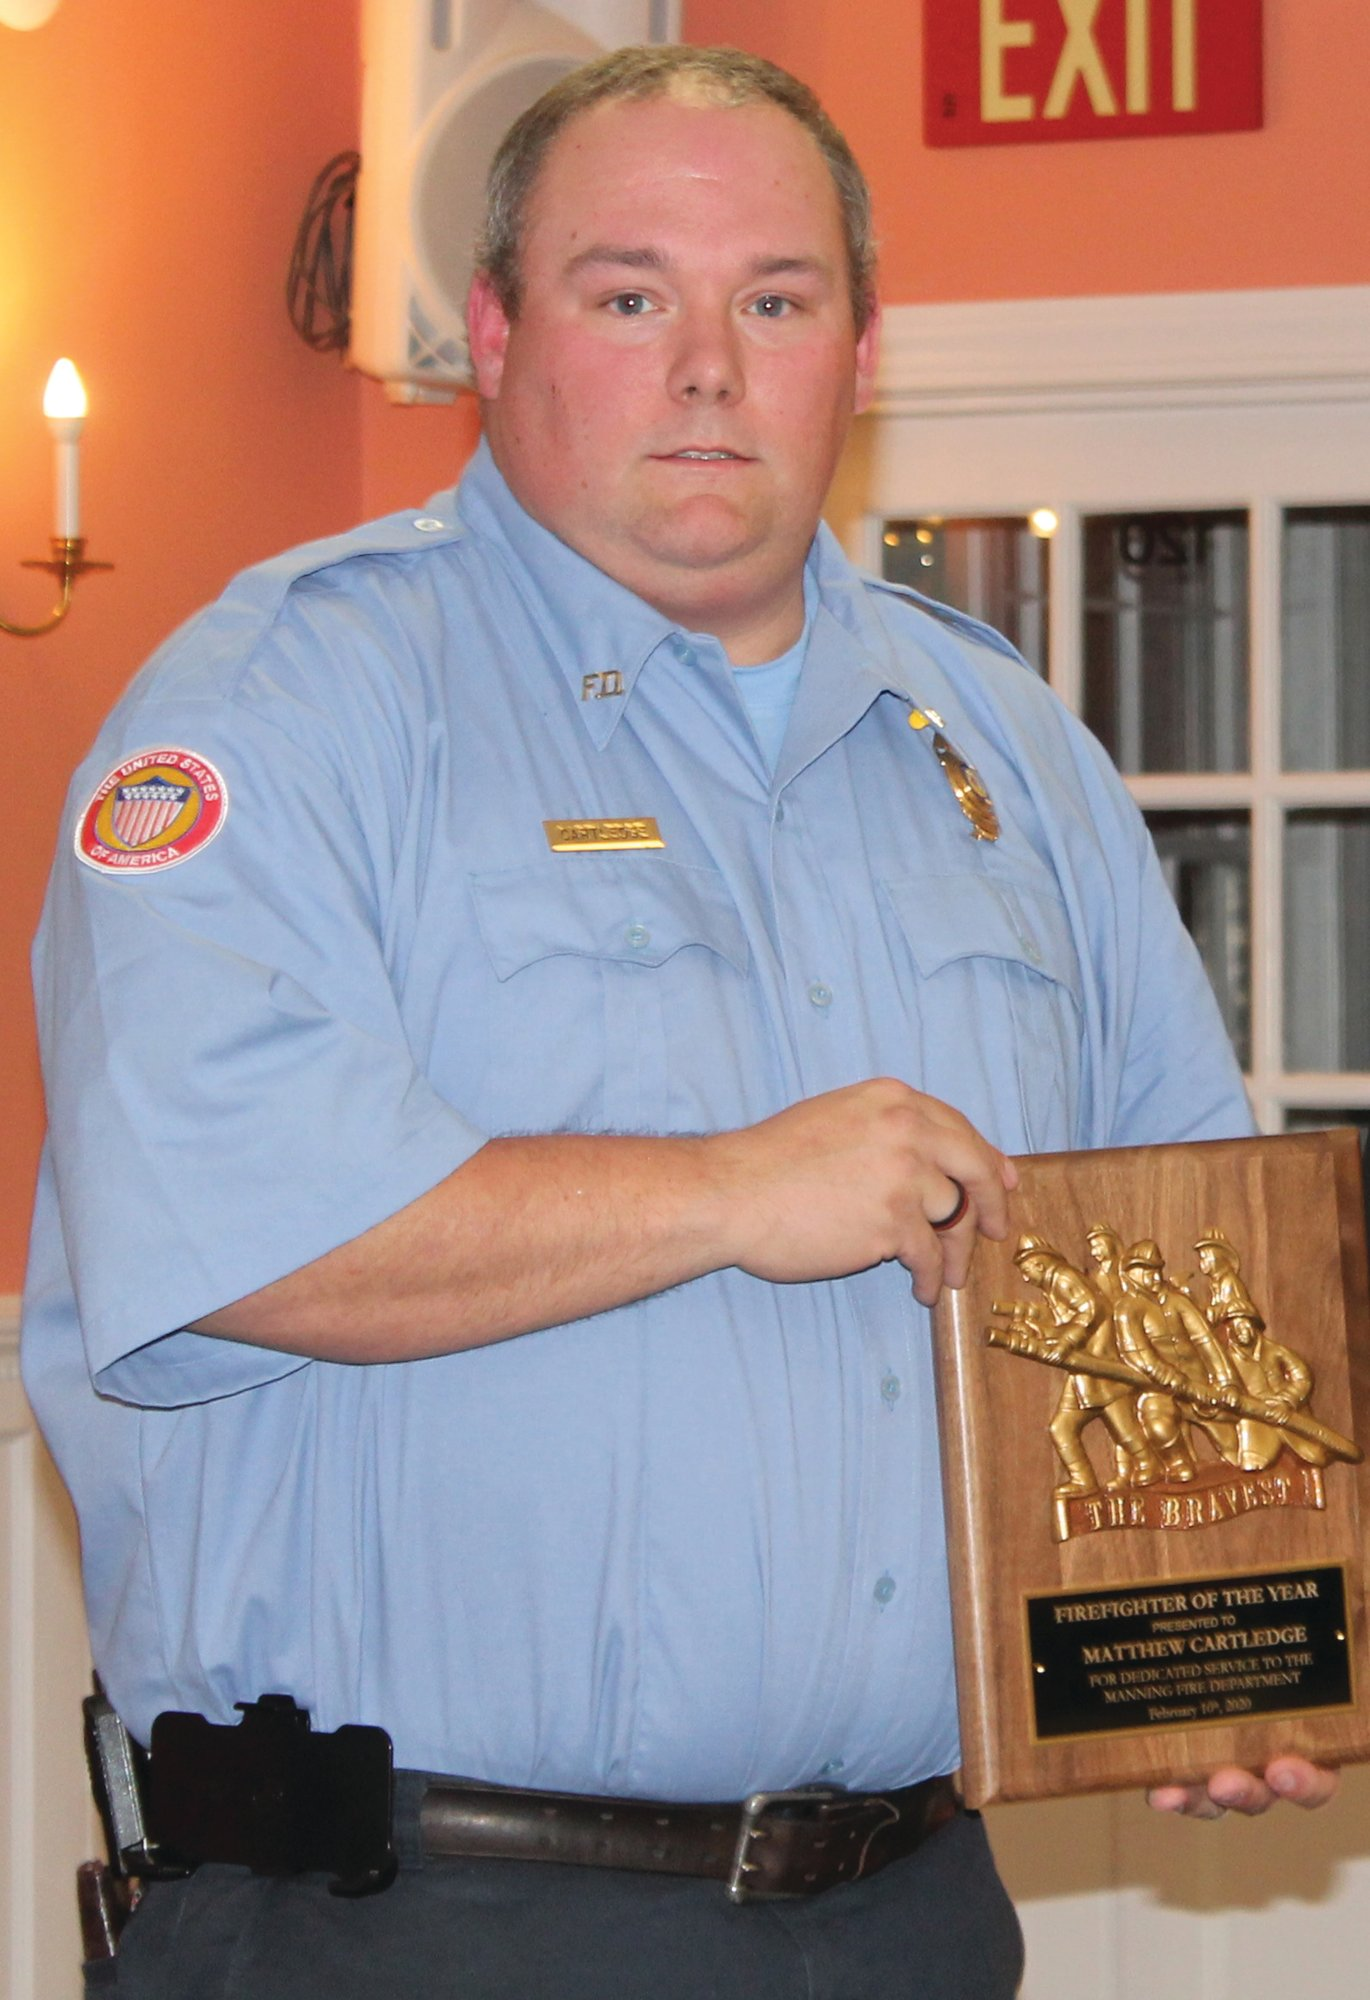 Firefighter Mathew Cartledge with the Manning Fire Department has only been with the department a few years; however, during that time he has earned the respect of his peers who voted him the Firefighter of the Year.